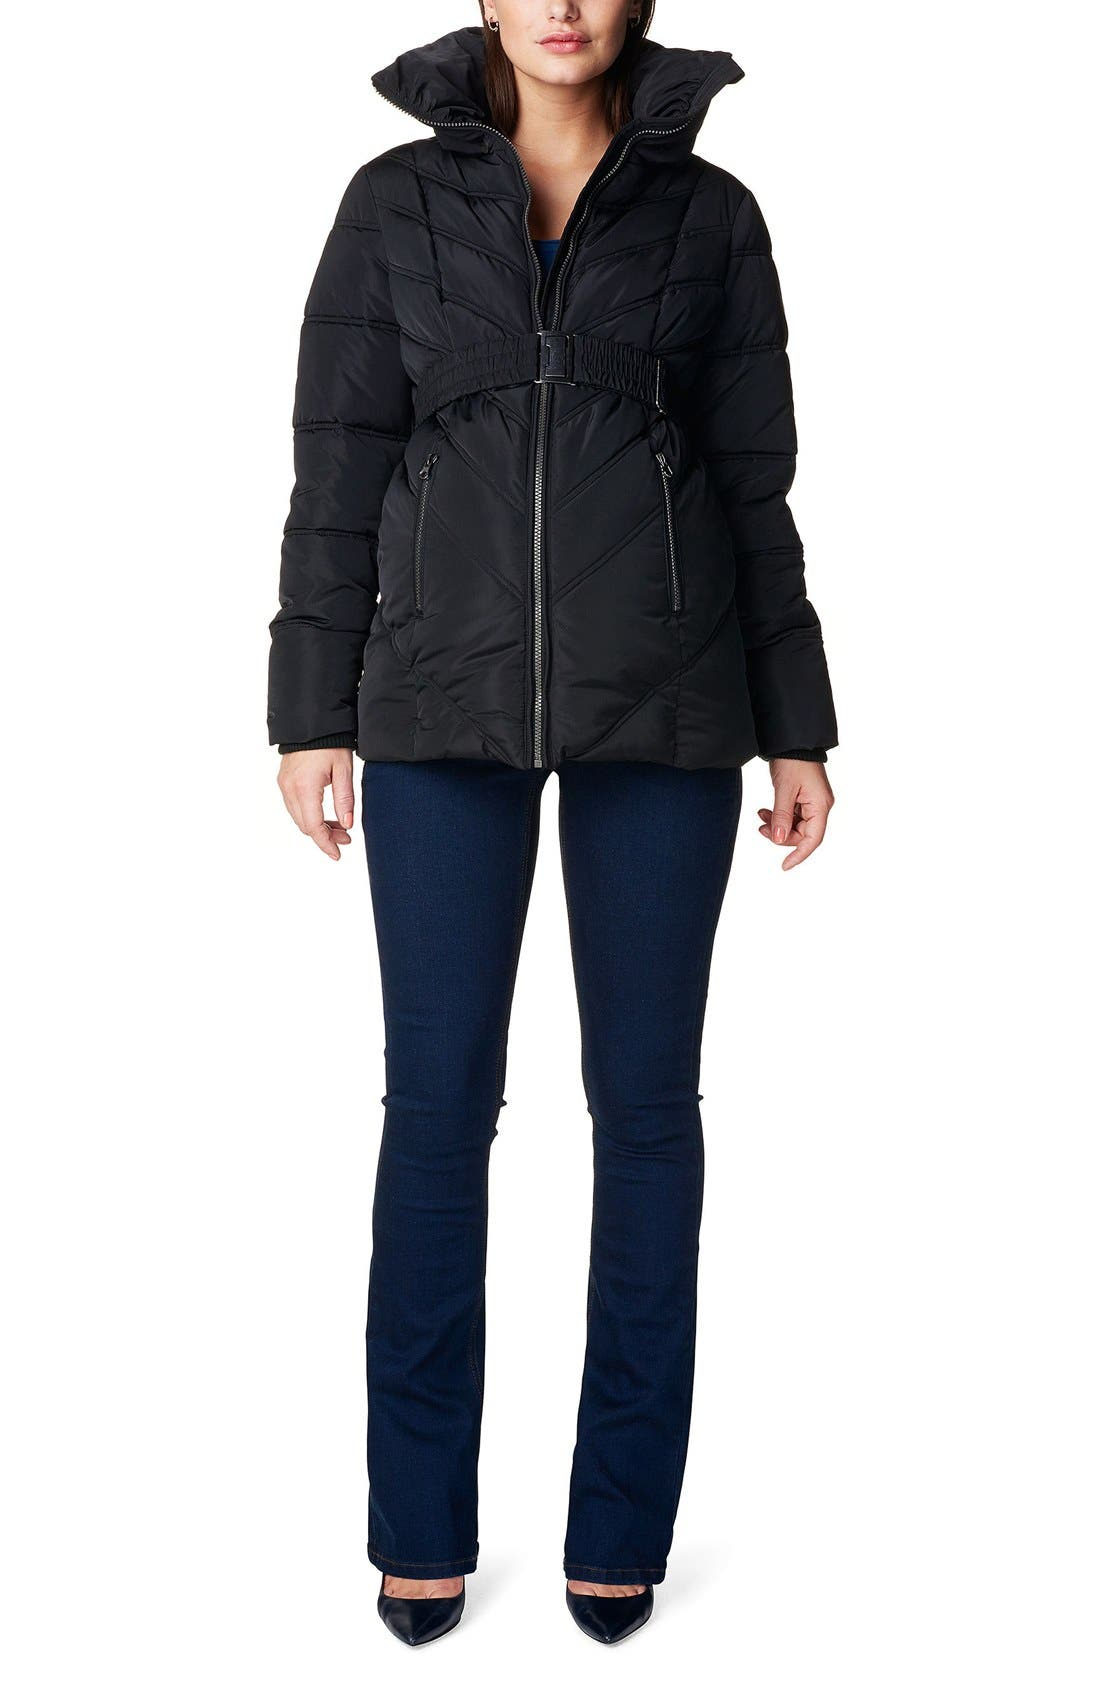 NOPPIES, 'Lene' Quilted Maternity Jacket, Main thumbnail 1, color, BLACK